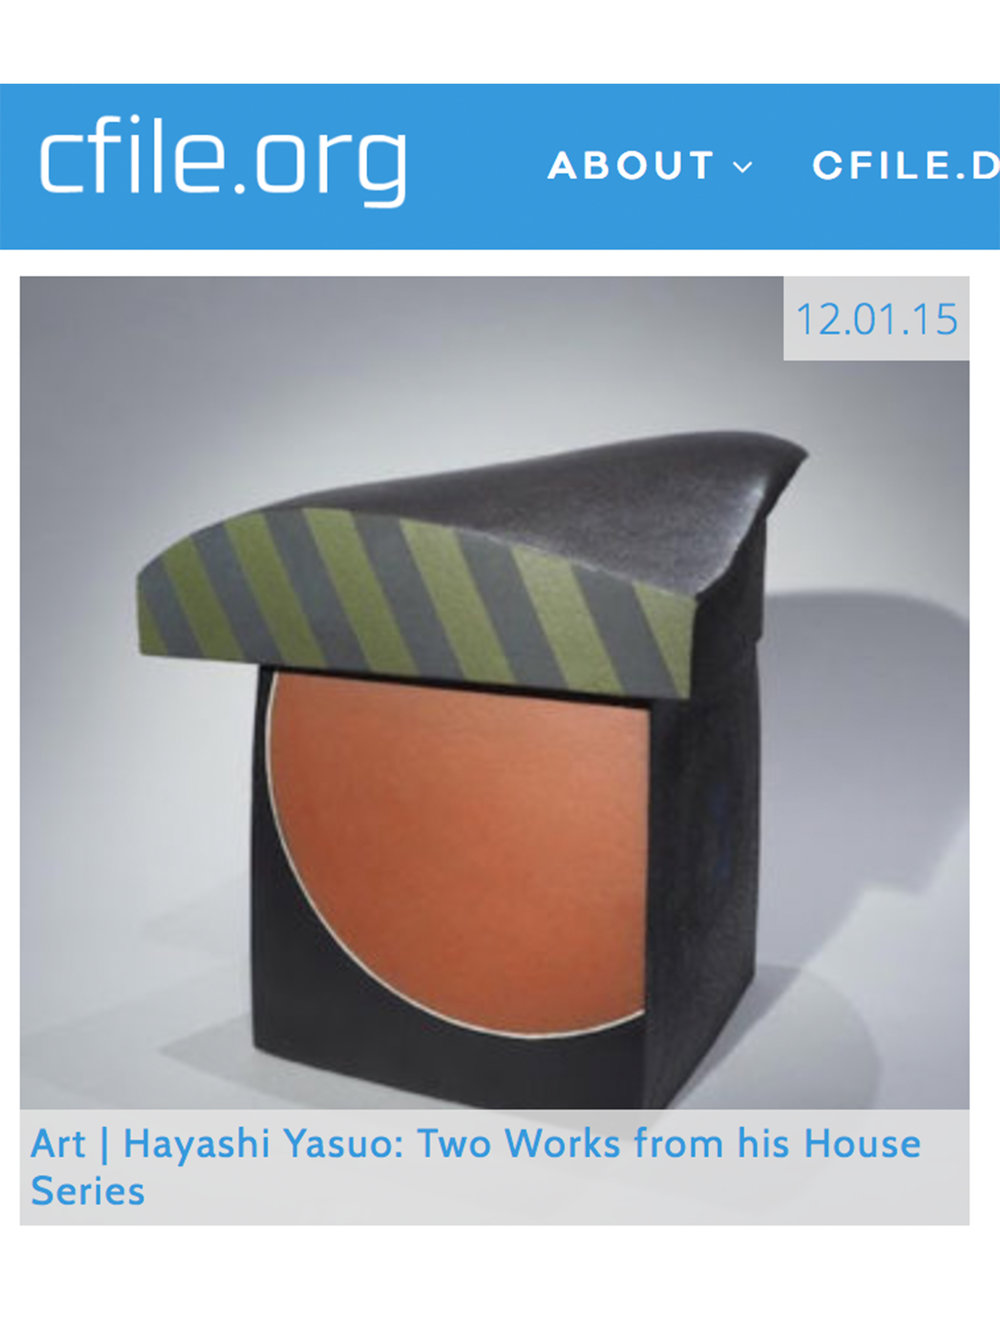 12/01/15 | C File.org : Art | Hayashi Yasuo: Two Works from his House Series